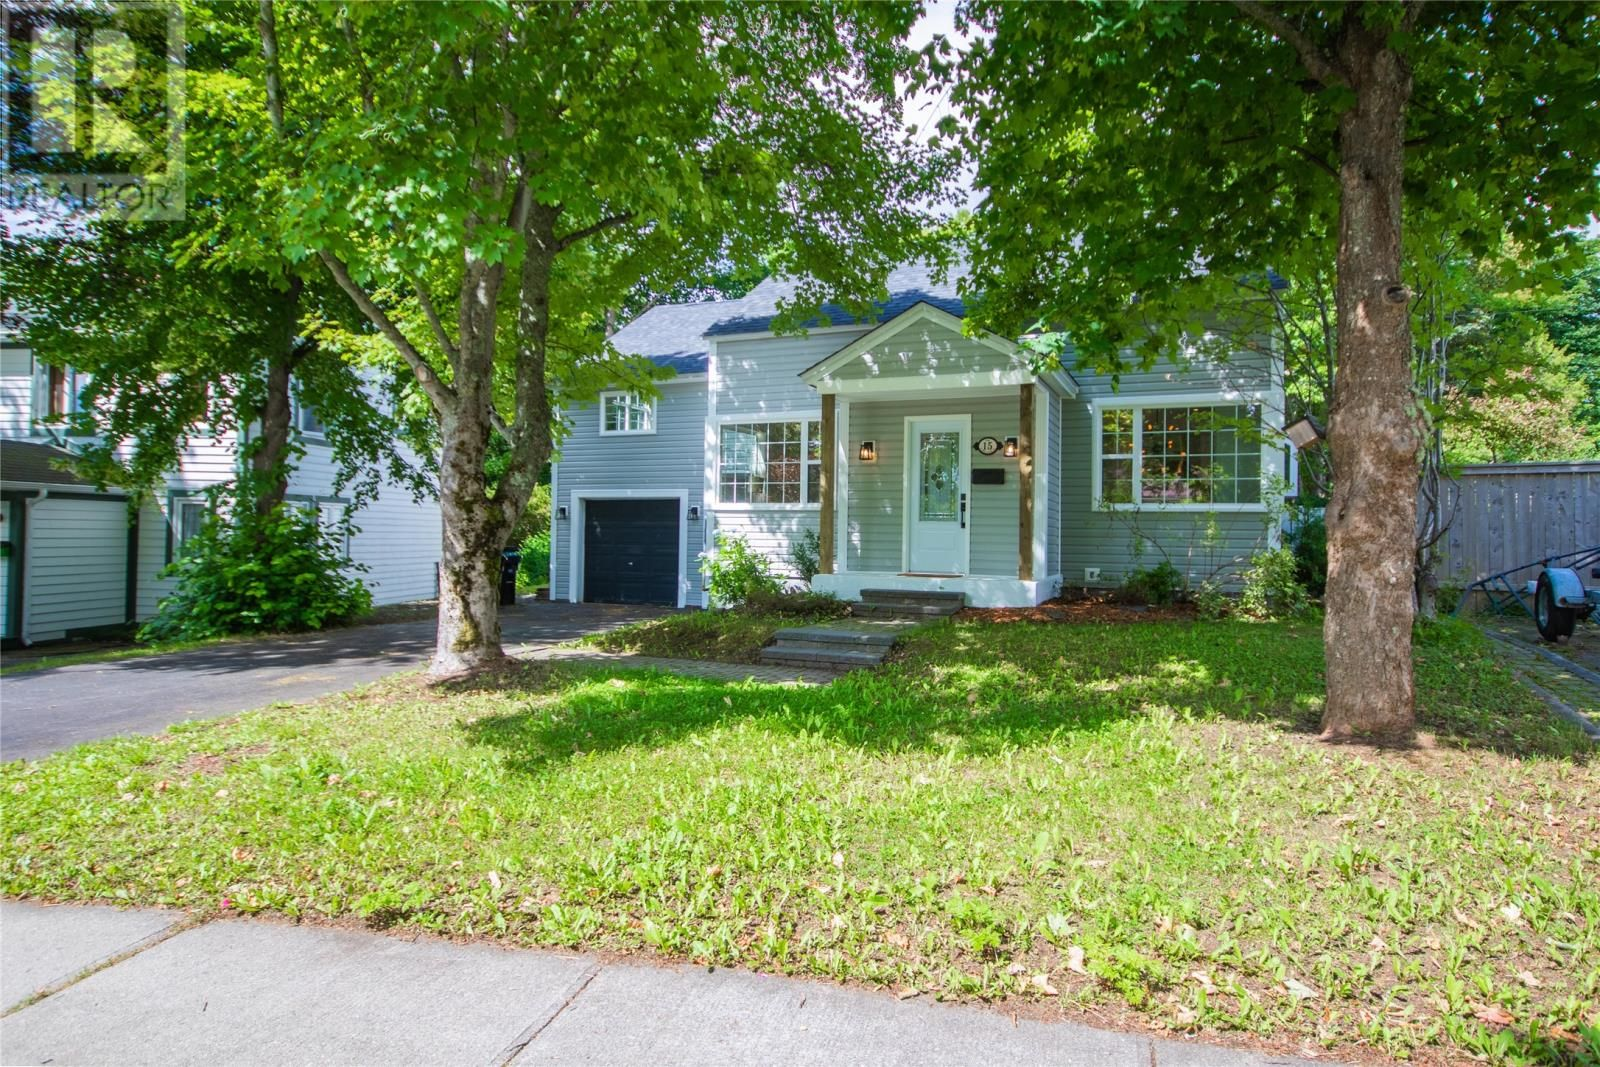 Main Photo: 15 Stoneyhouse Street in St. John's: House for sale : MLS®# 1234165